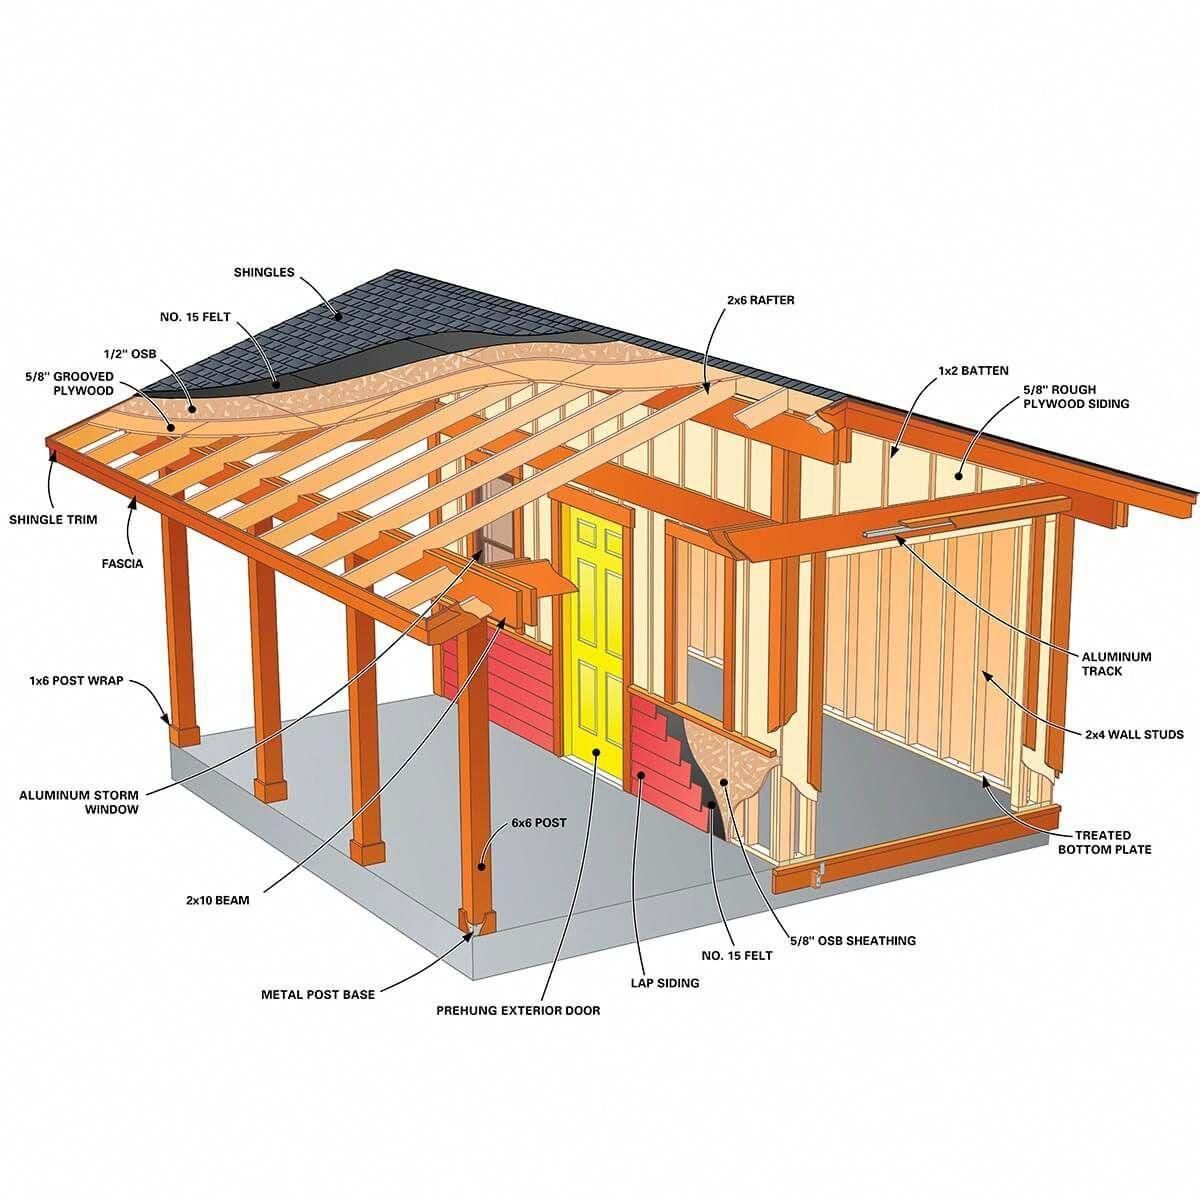 Just About Everythings There Is To Know About Shed Plans 7x7 Can Be Found Here Building A Shed Shed Plans Shed Storage